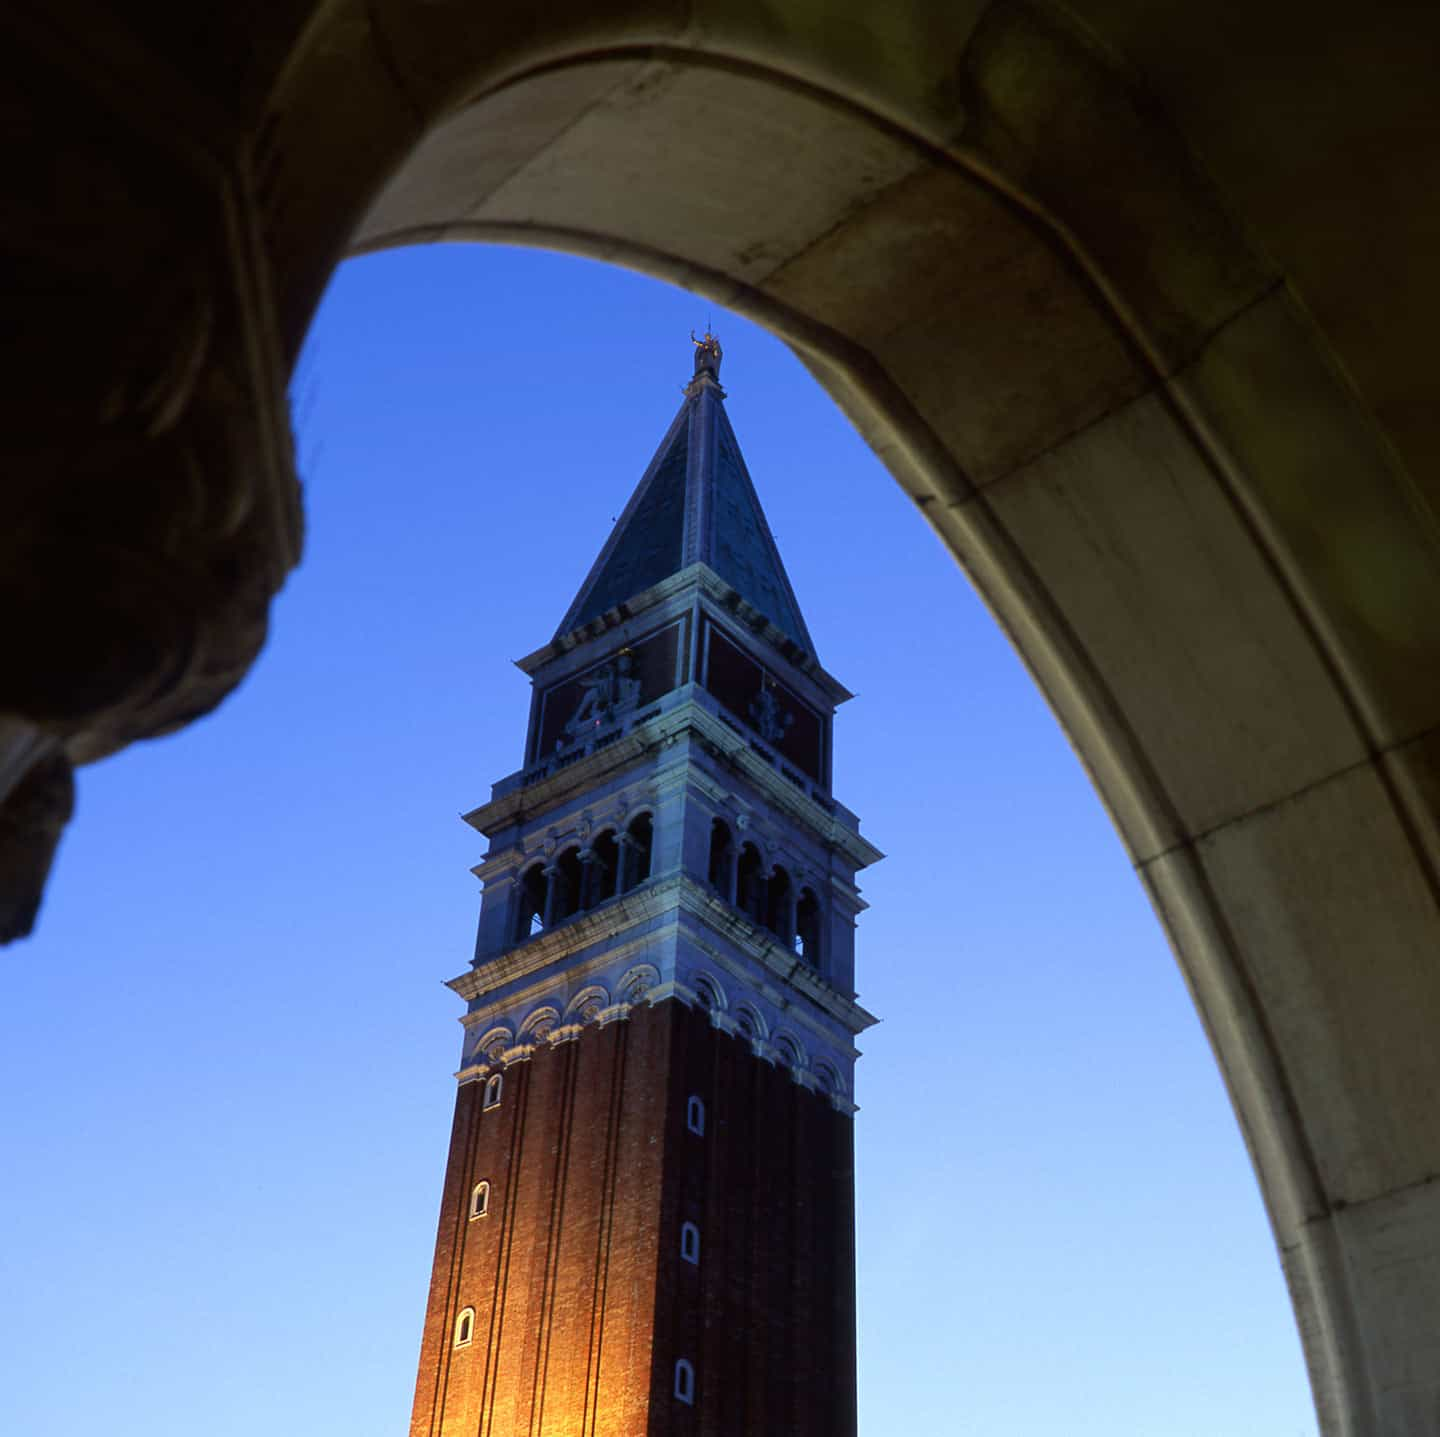 Image of the campanile of Saint Mark in Venice Italy